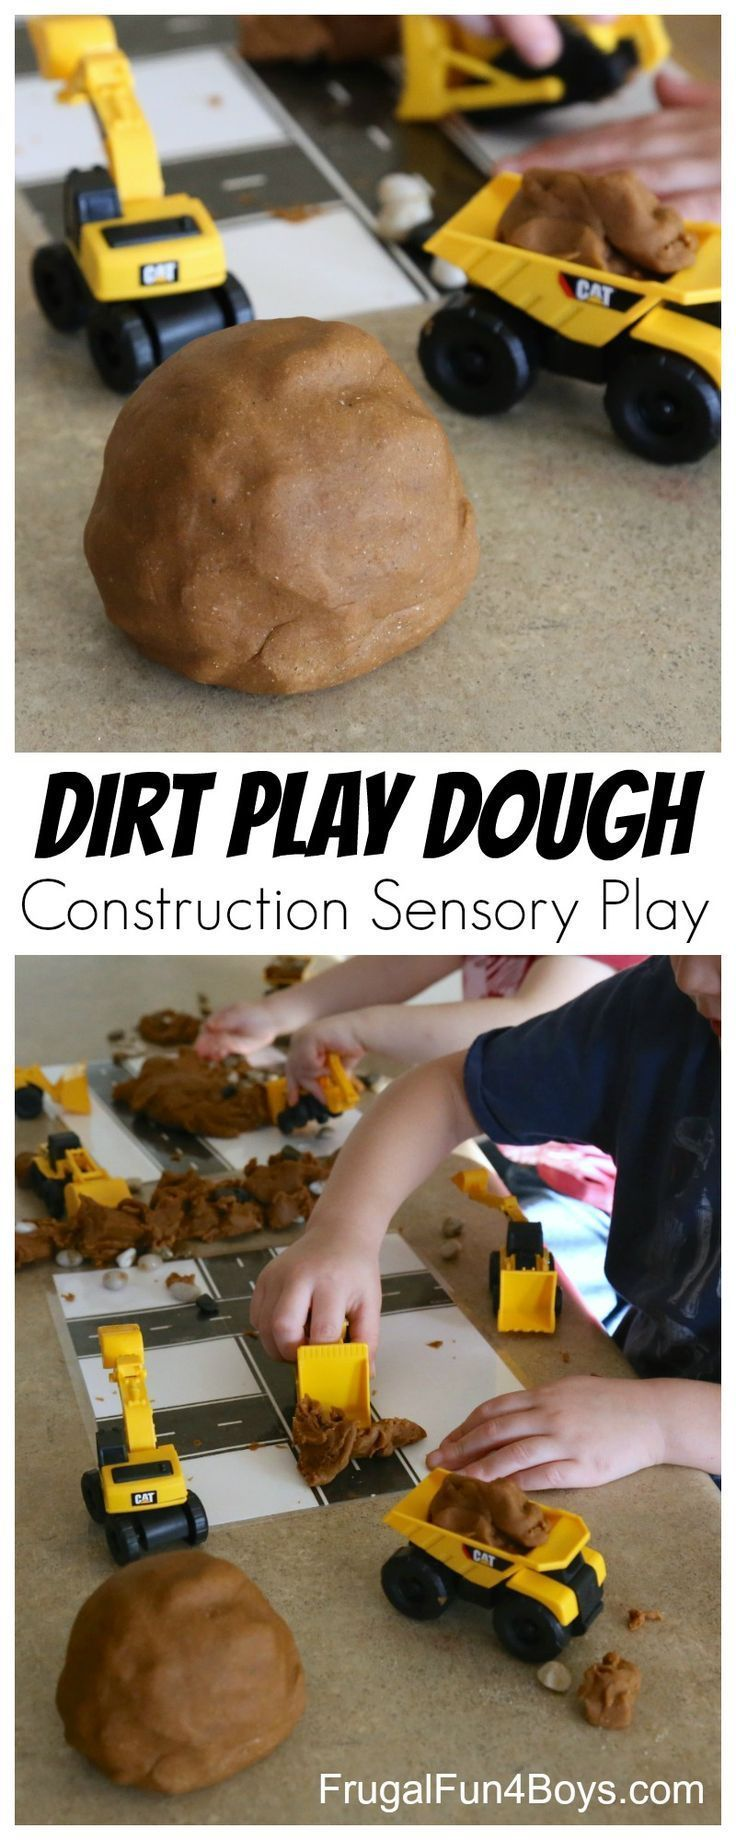 This dirt play dough recipe is perfect for construction themed sensory play! My preschoolers have been loving it. Make some simple laminated play dough mats with roads and kids will have a blast bulldozing the roads and pretending to build! Give your play